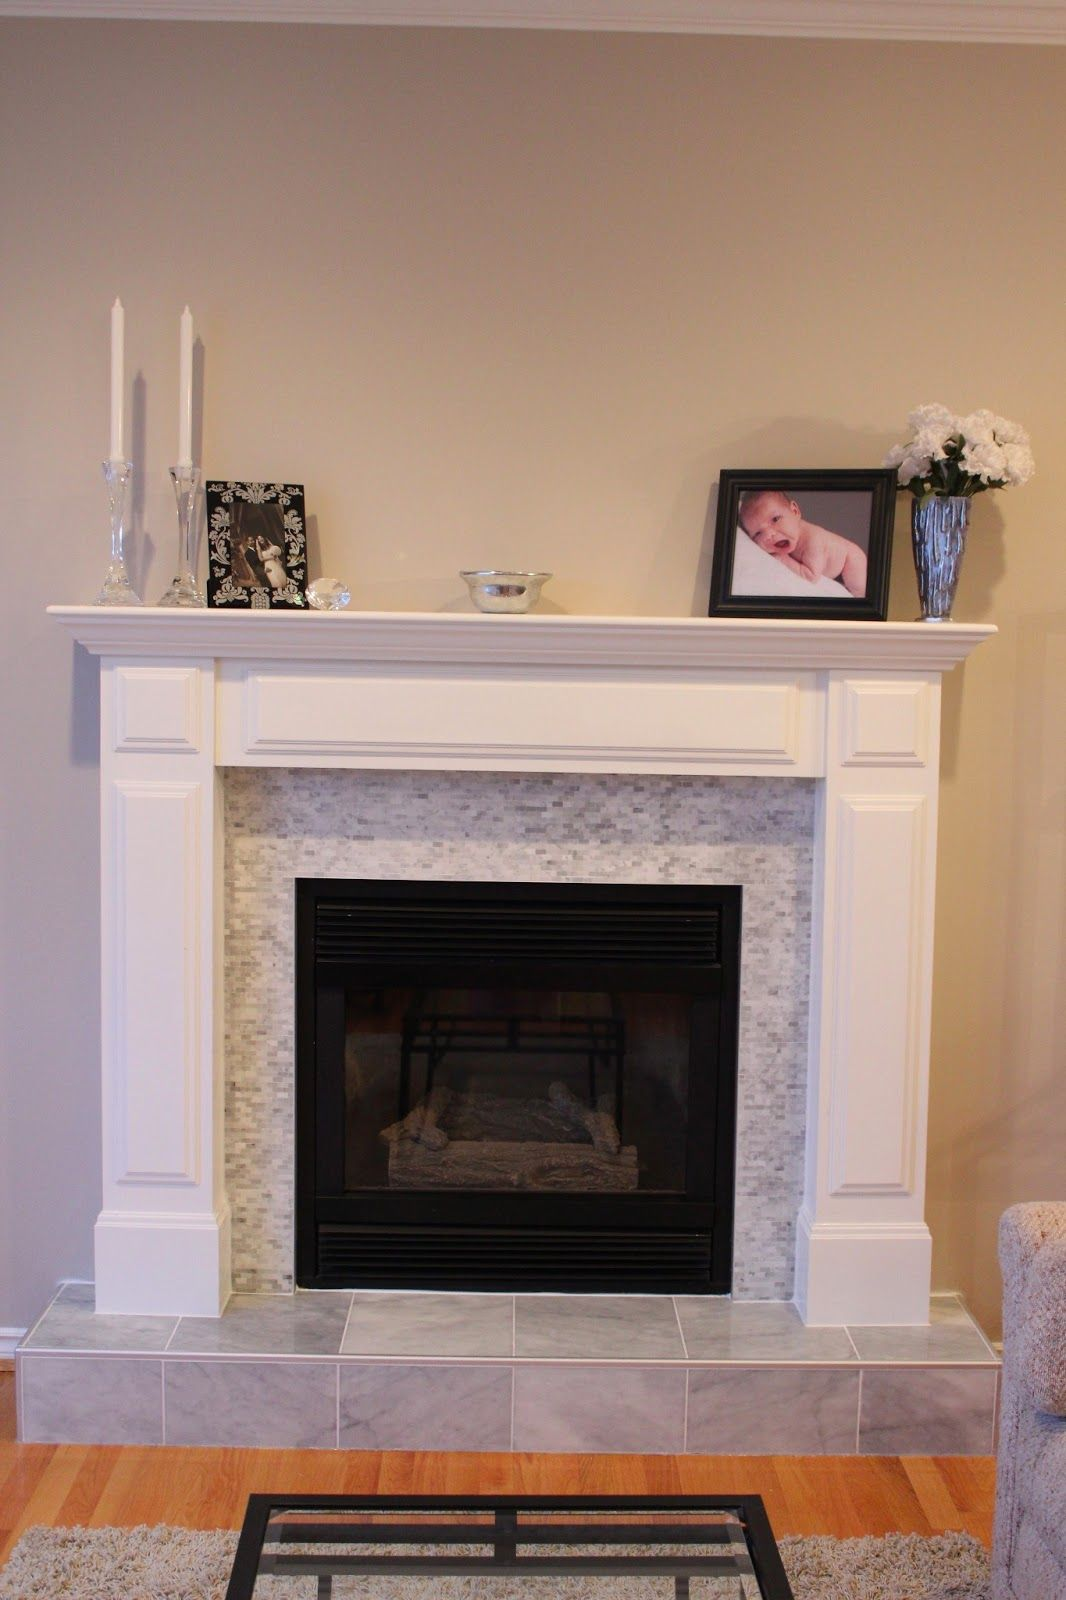 Tile over brick fireplace before and after google search for the home brick fireplace - Tile over brick fireplace ...